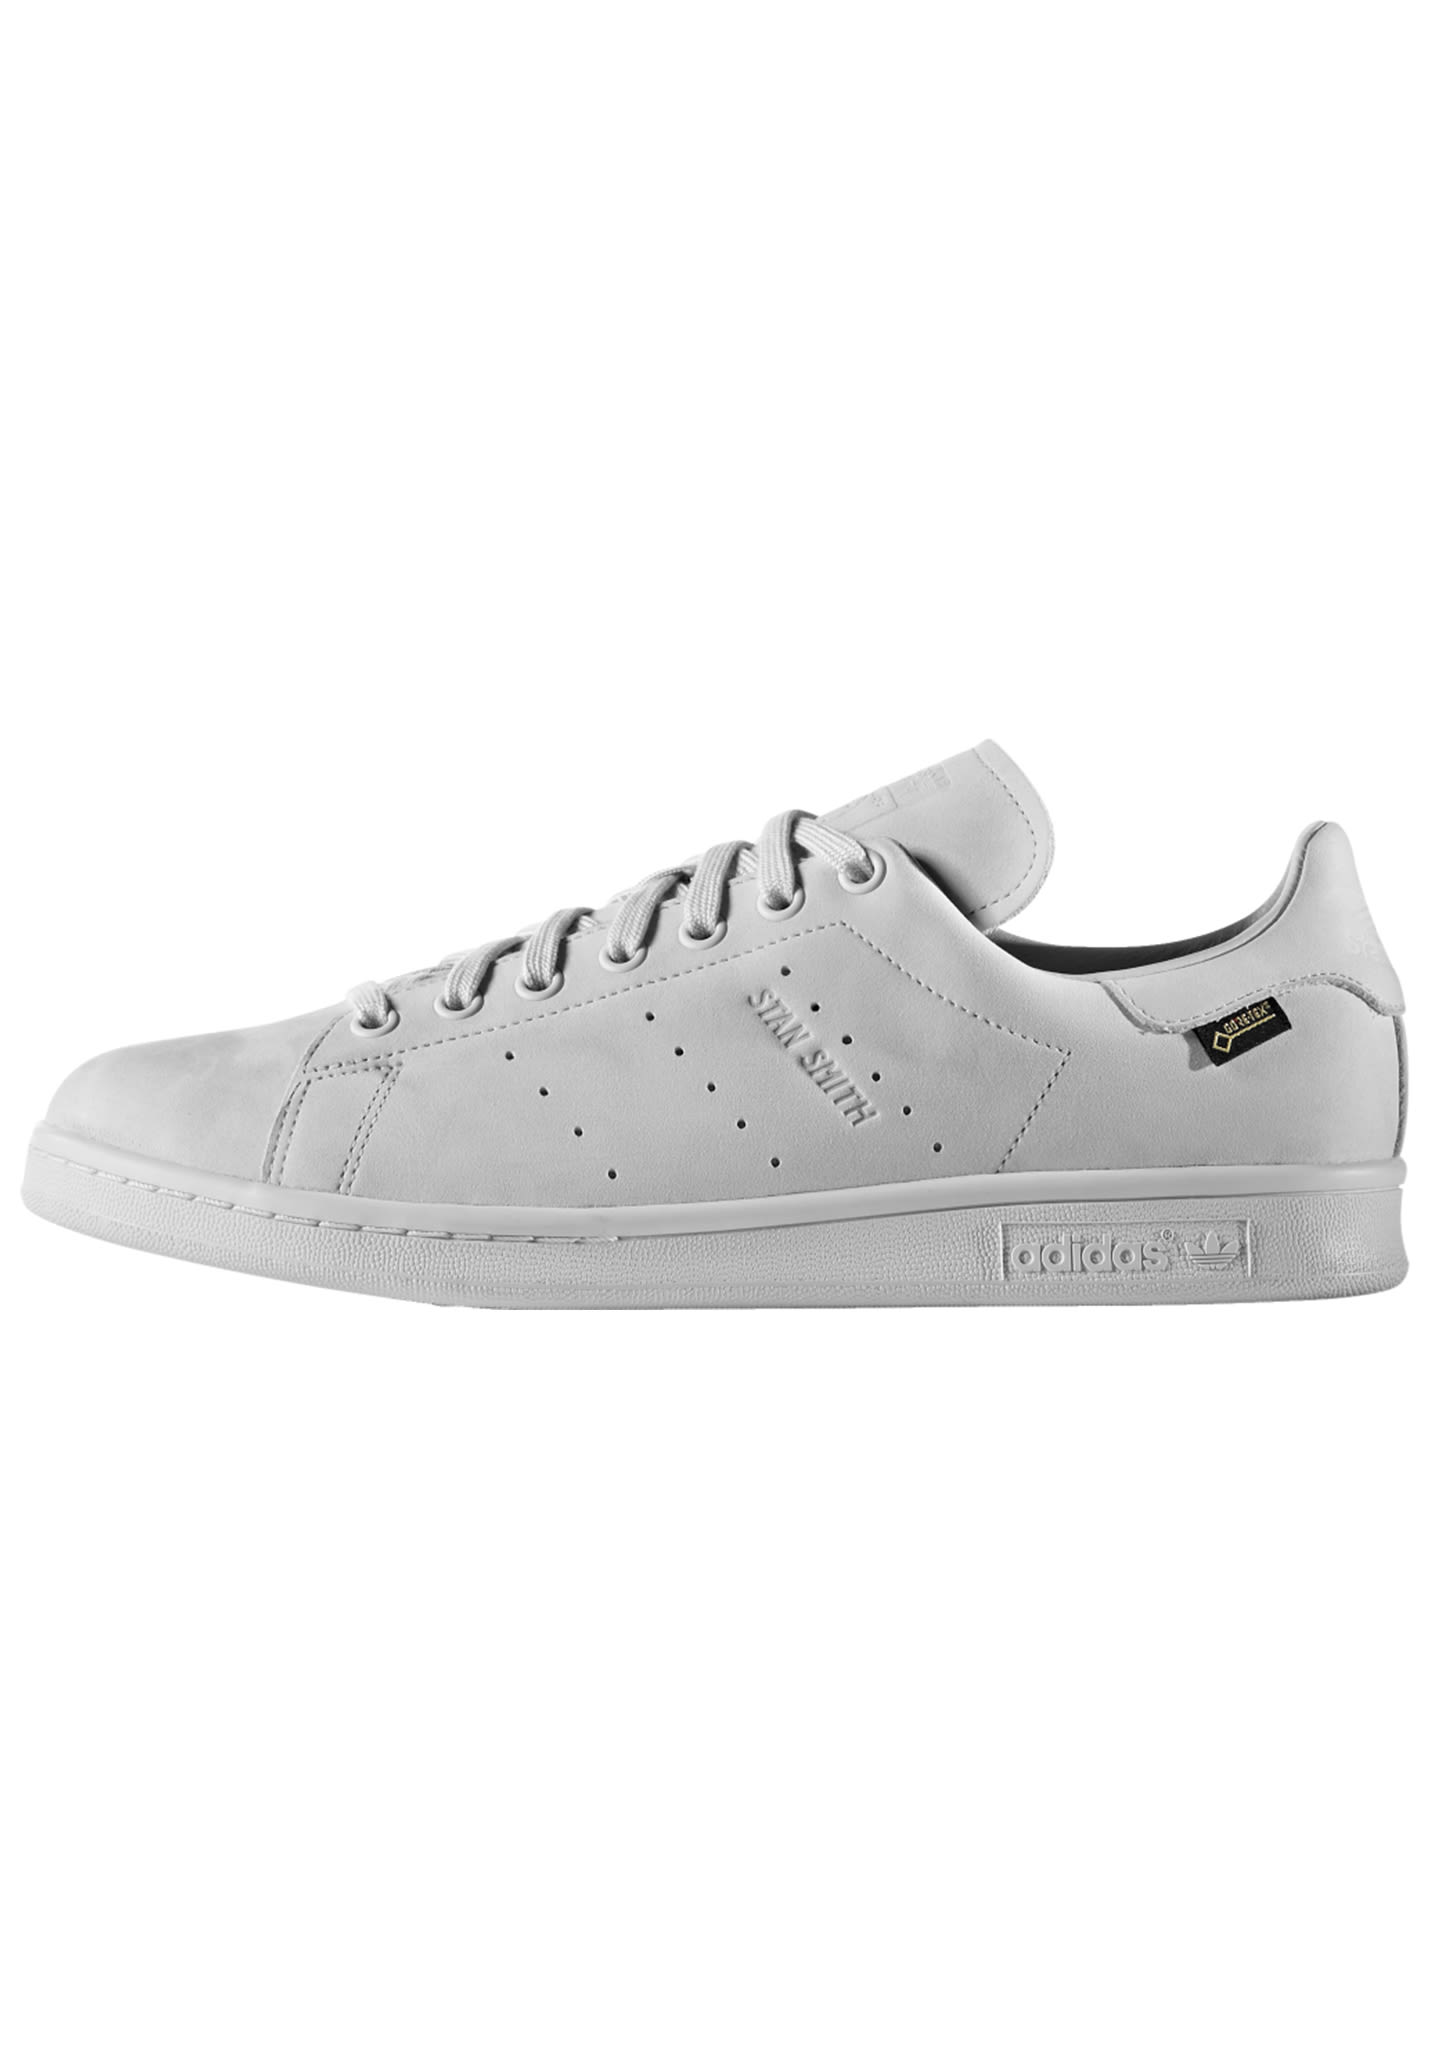 the latest 504c8 9b6bc ADIDAS ORIGINALS Stan Smith GTX - Baskets pour Homme - Gris - Planet Sports